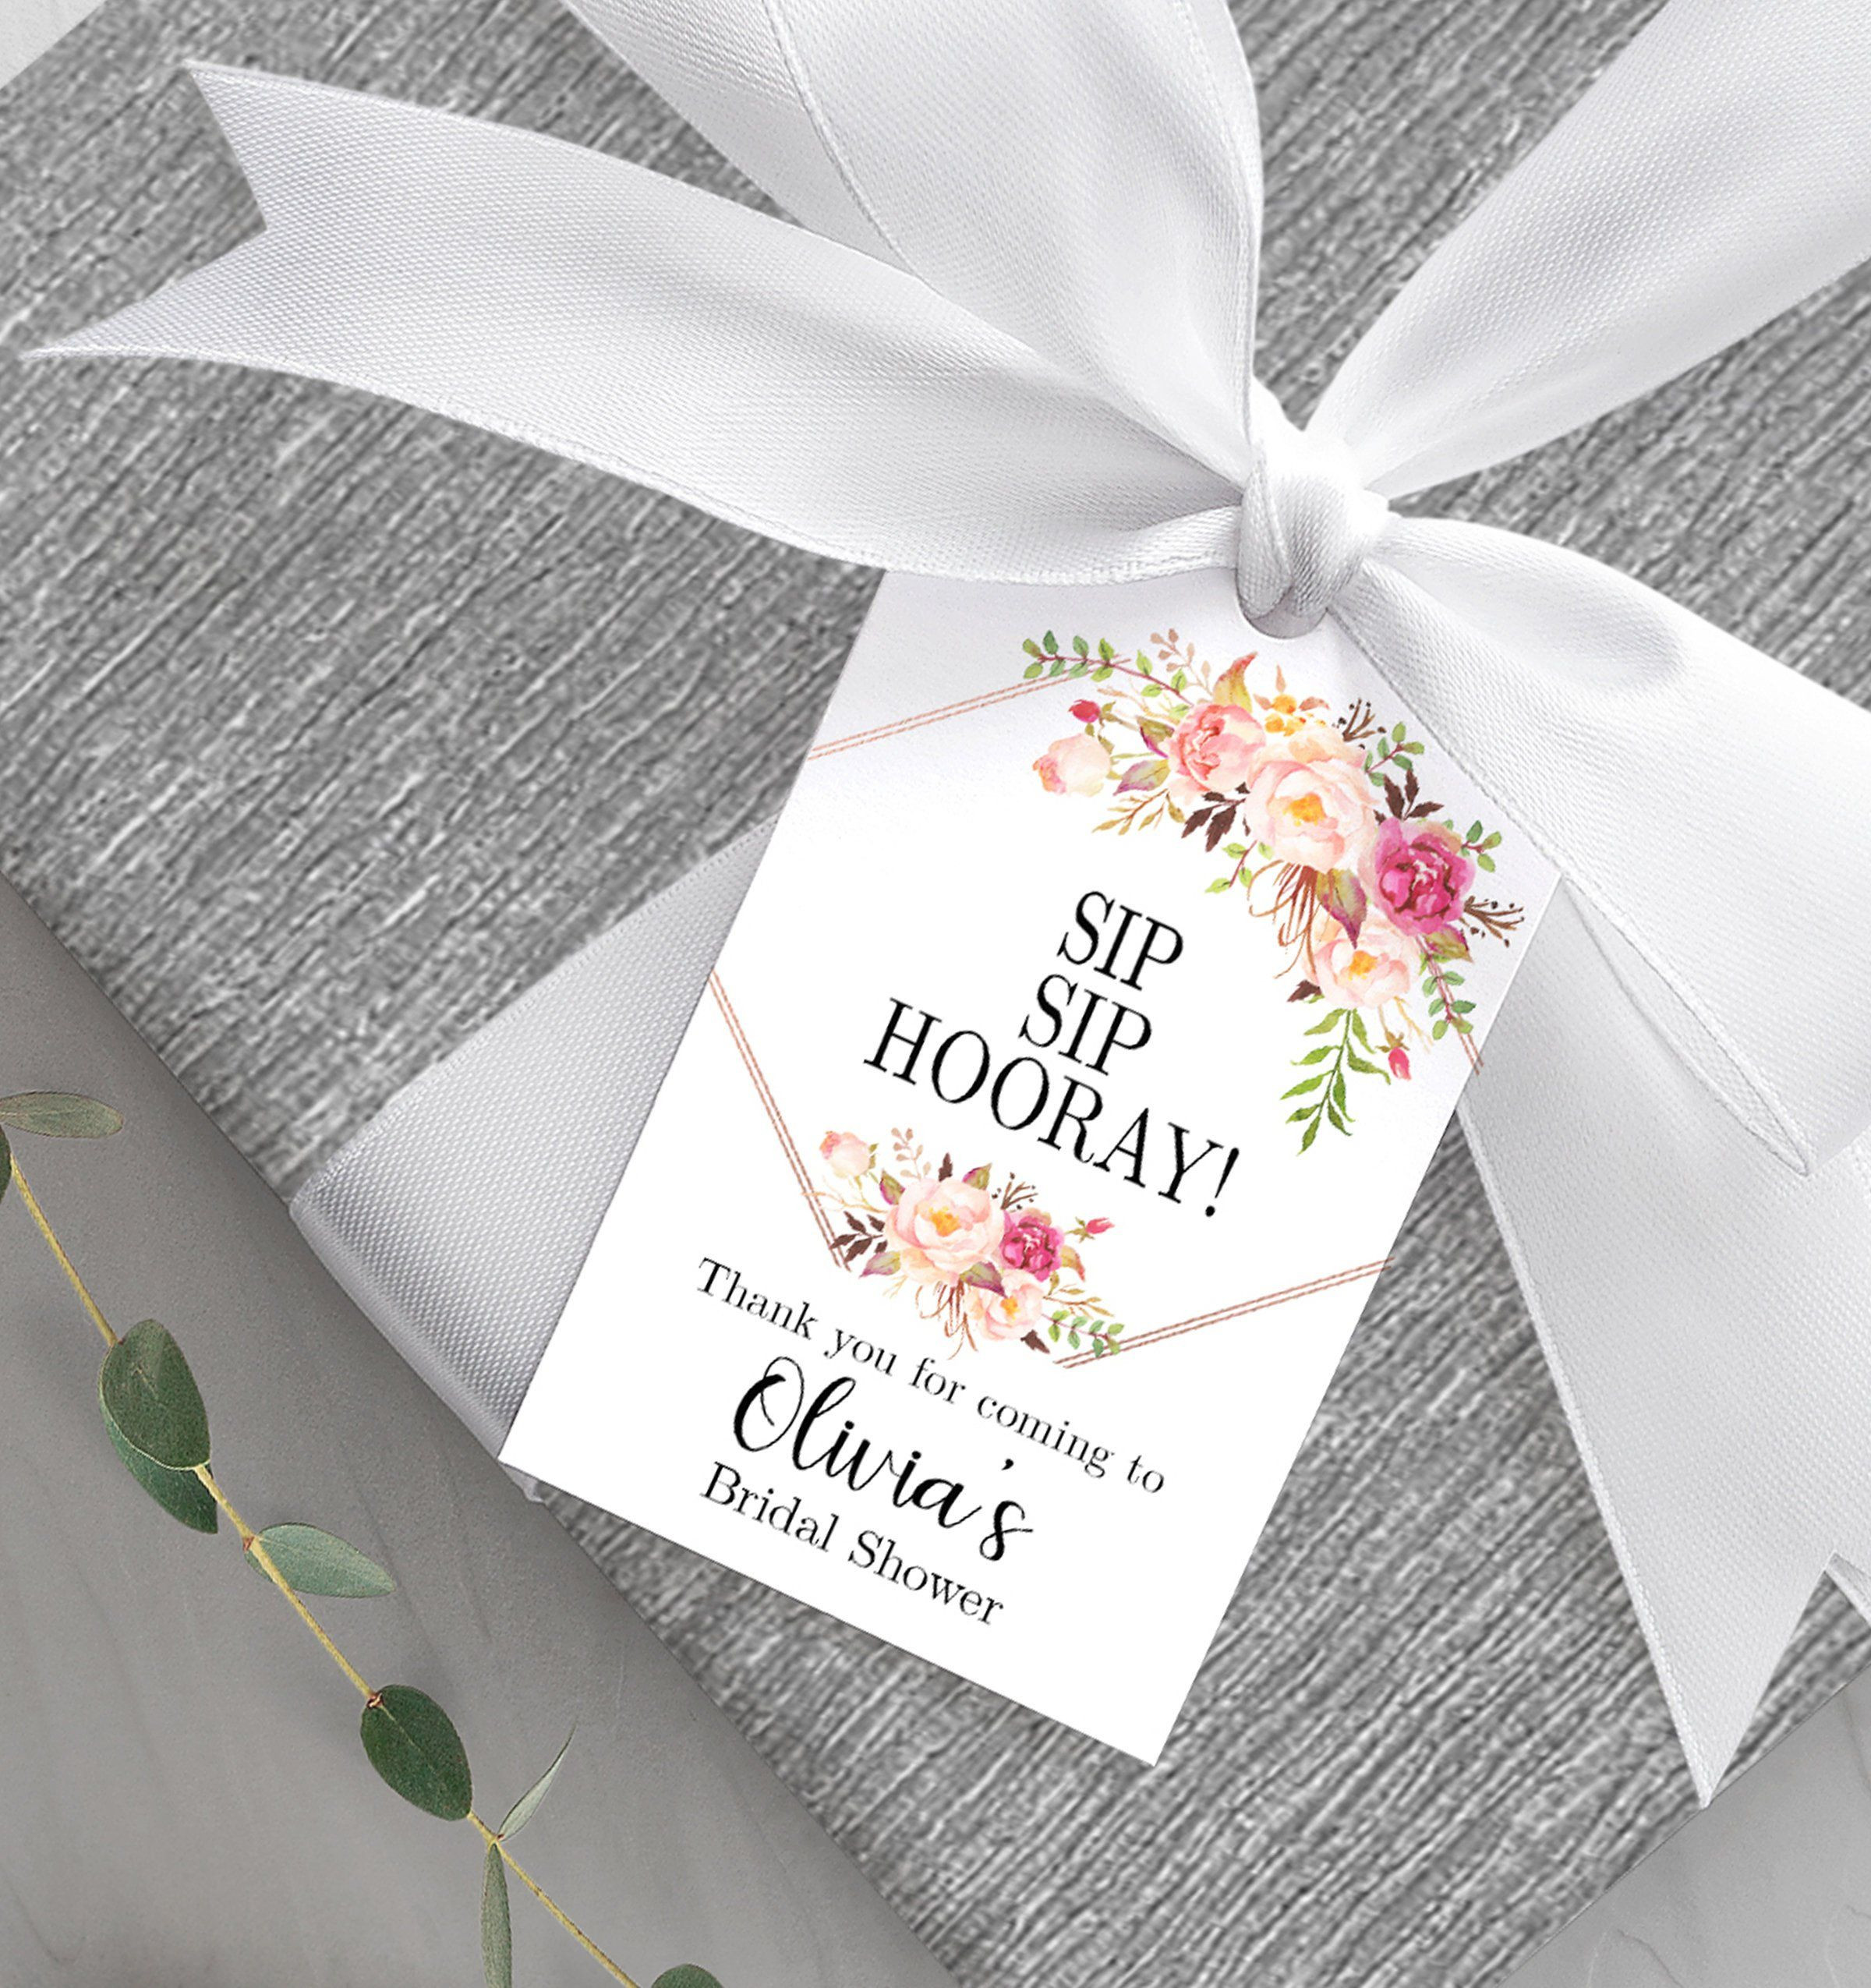 Gift Tag Template Unique Bridal Shower Favor Tag Printable Sip Sip Hooray Tag